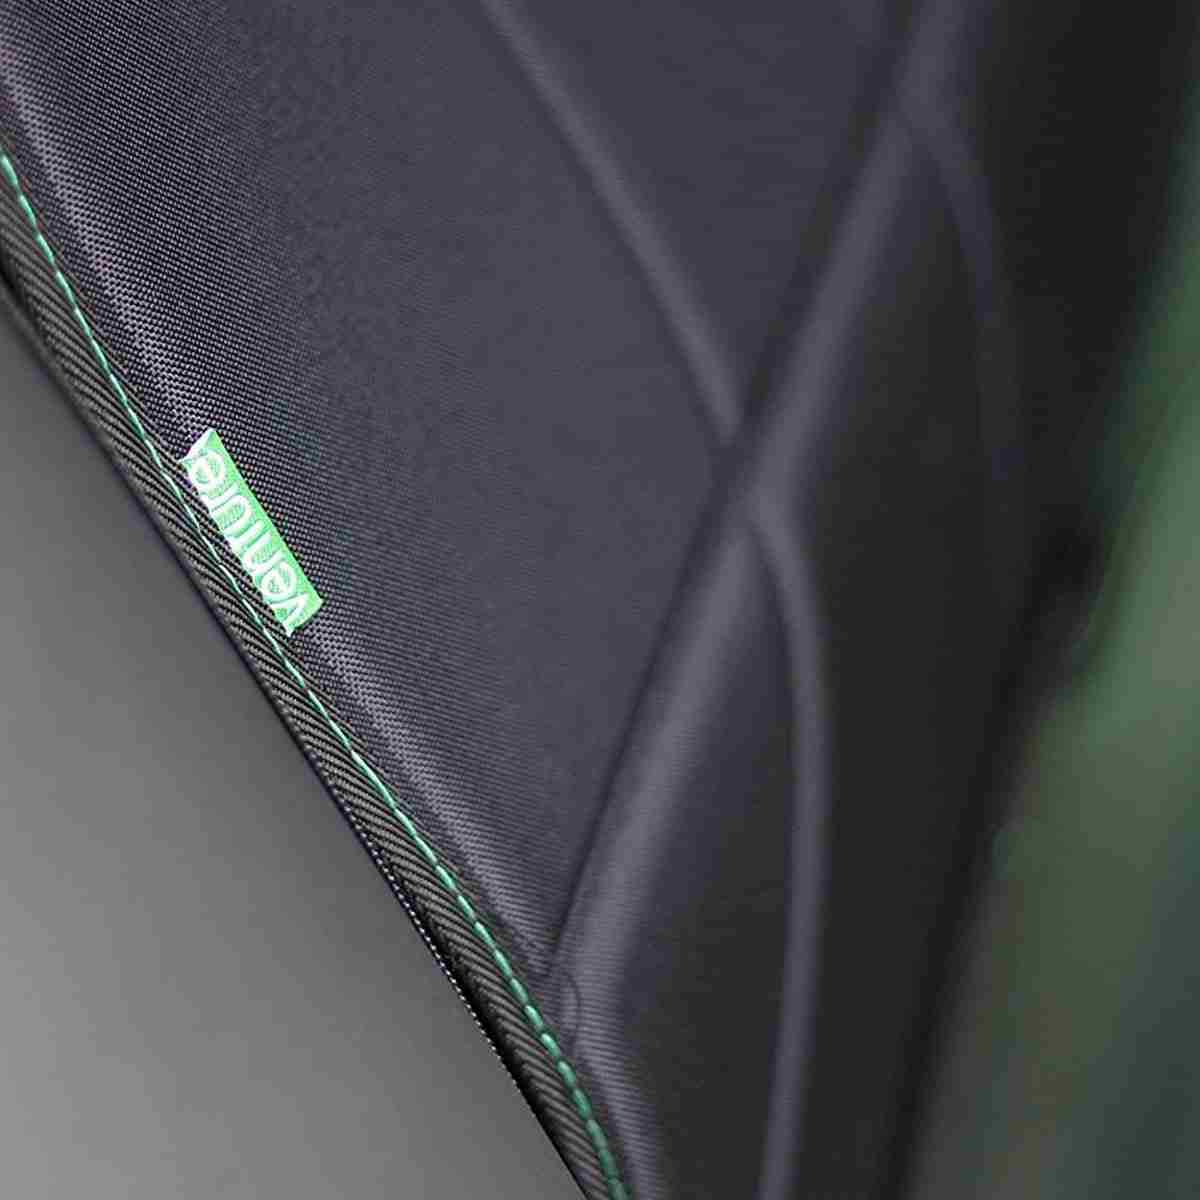 Thick lined padding prevents damage to car seats